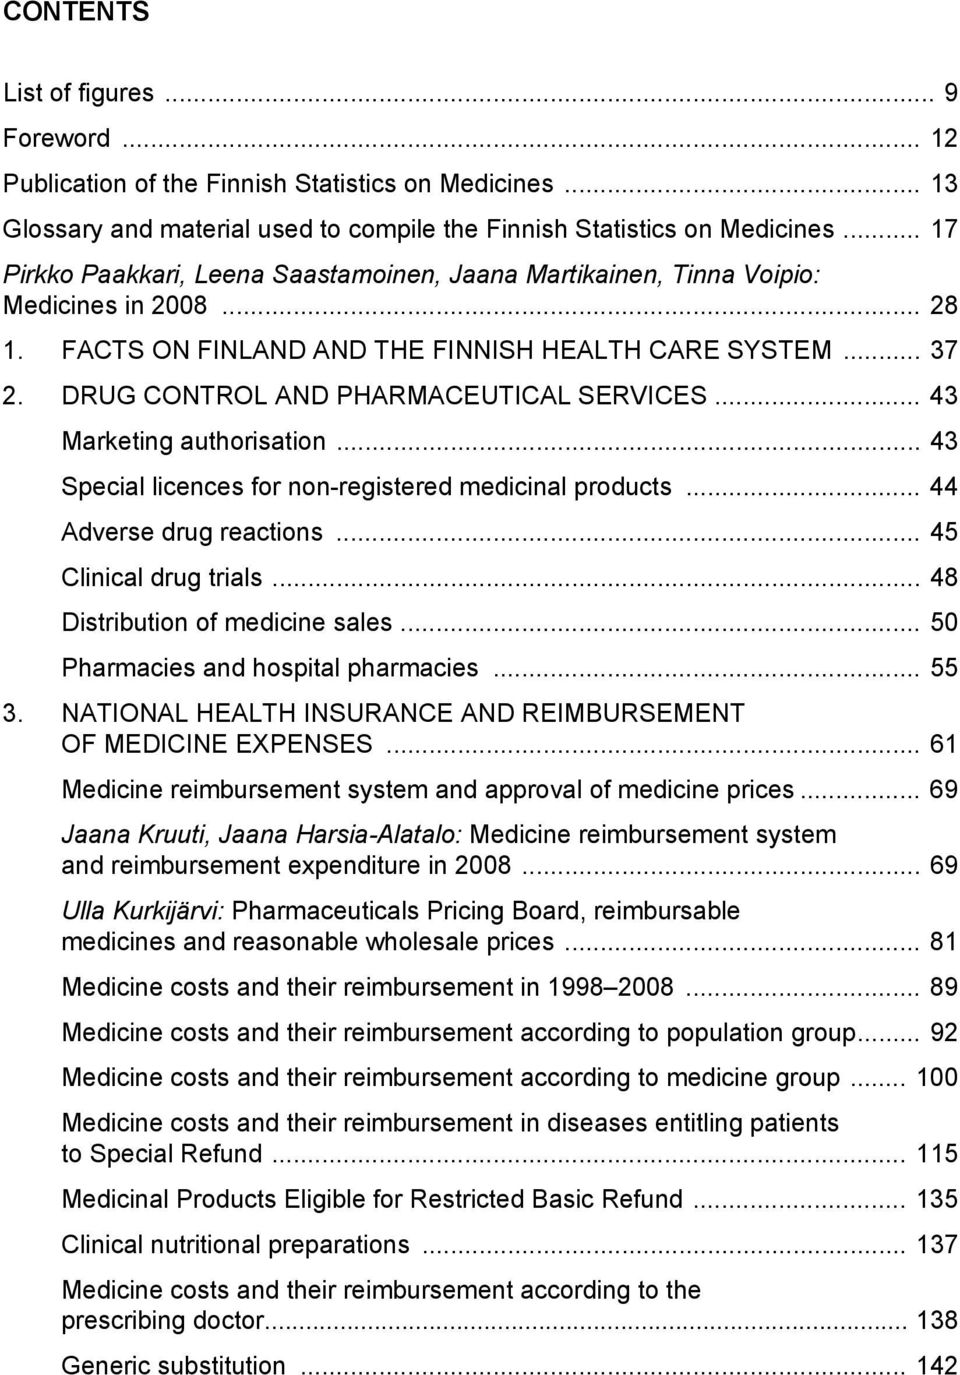 DRUG CONTROL AND PHARMACEUTICAL SERVICES... 43 Marketing authorisation... 43 Special licences for non-registered medicinal products... 44 Adverse drug reactions... 45 Clinical drug trials.